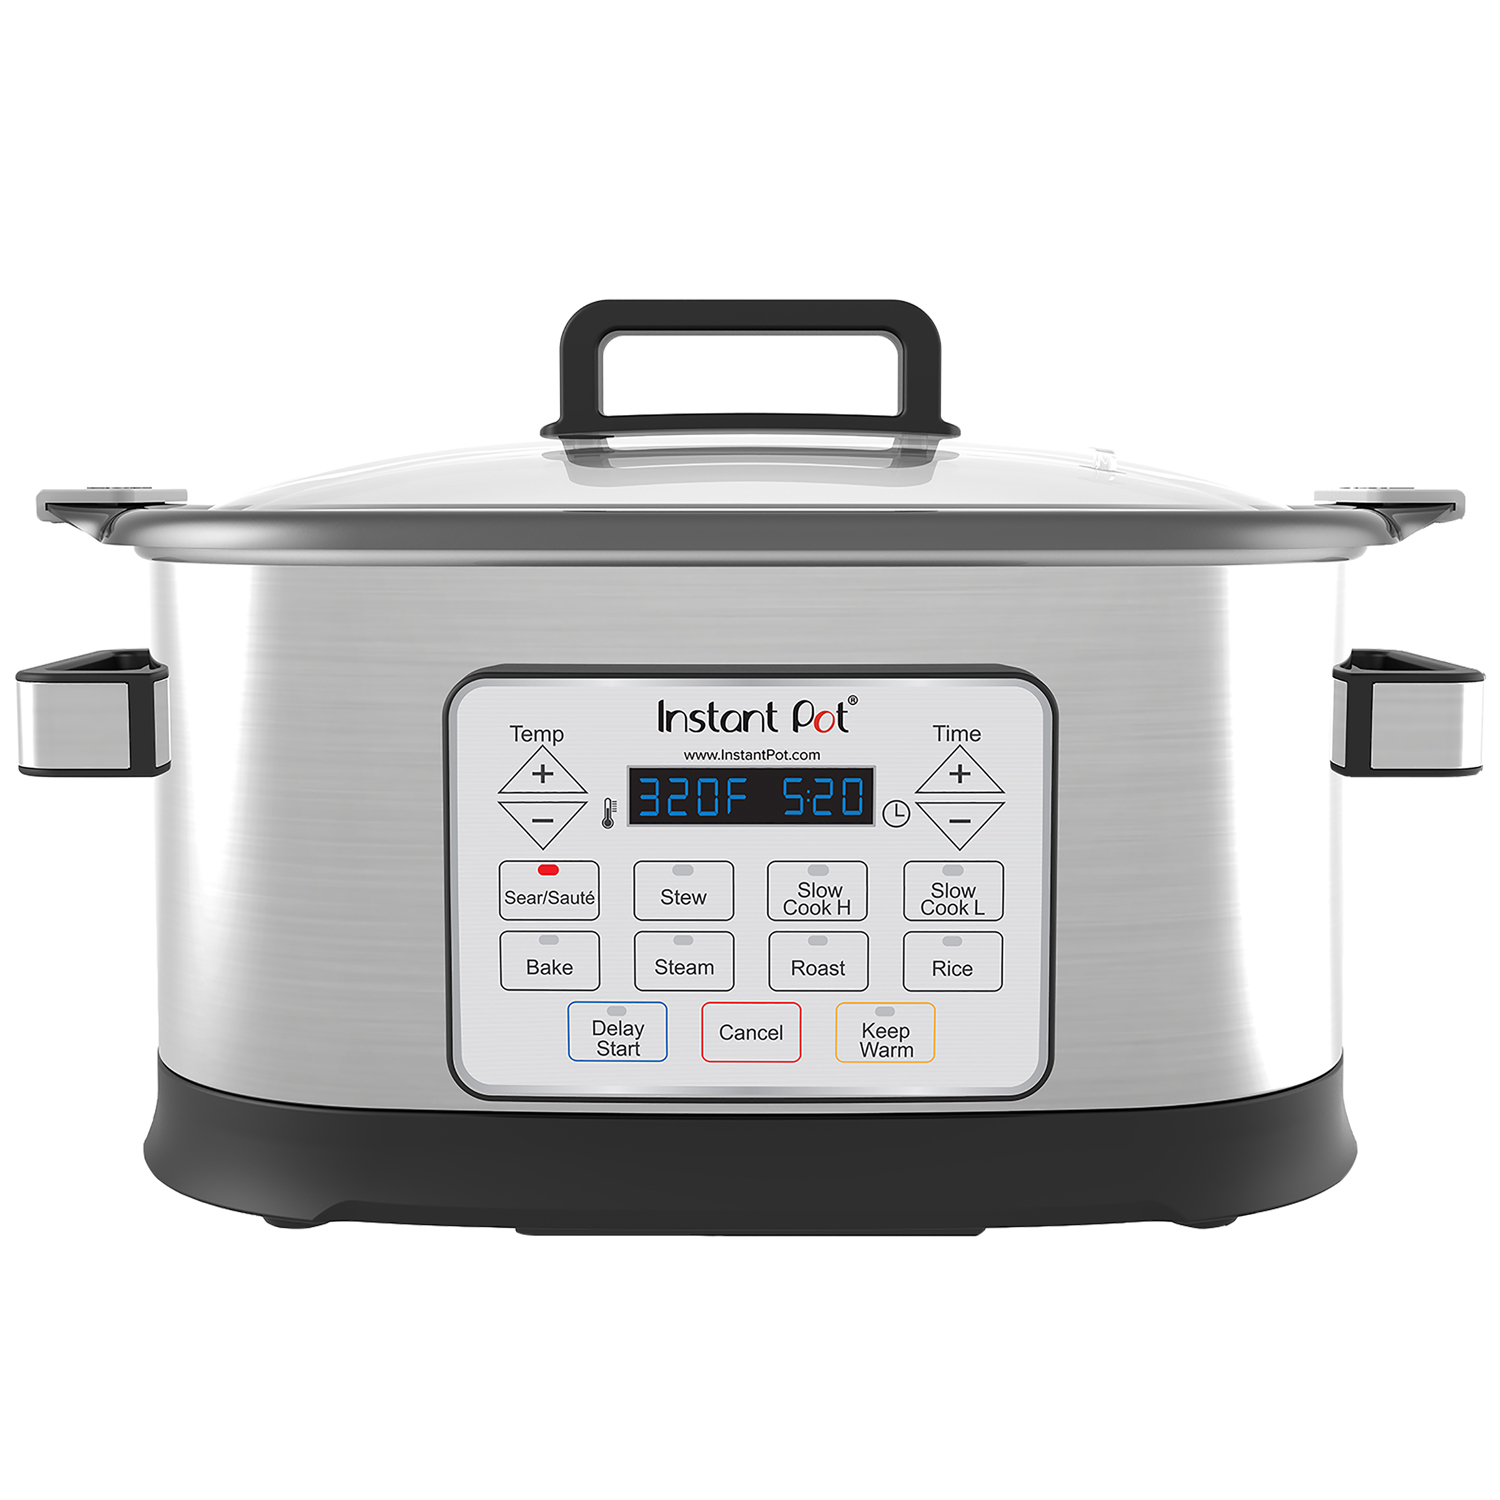 Instant Pot Gem 6 Qt 8-in-1 Programmable Multicooker, with Advanced Microprocessor Technology